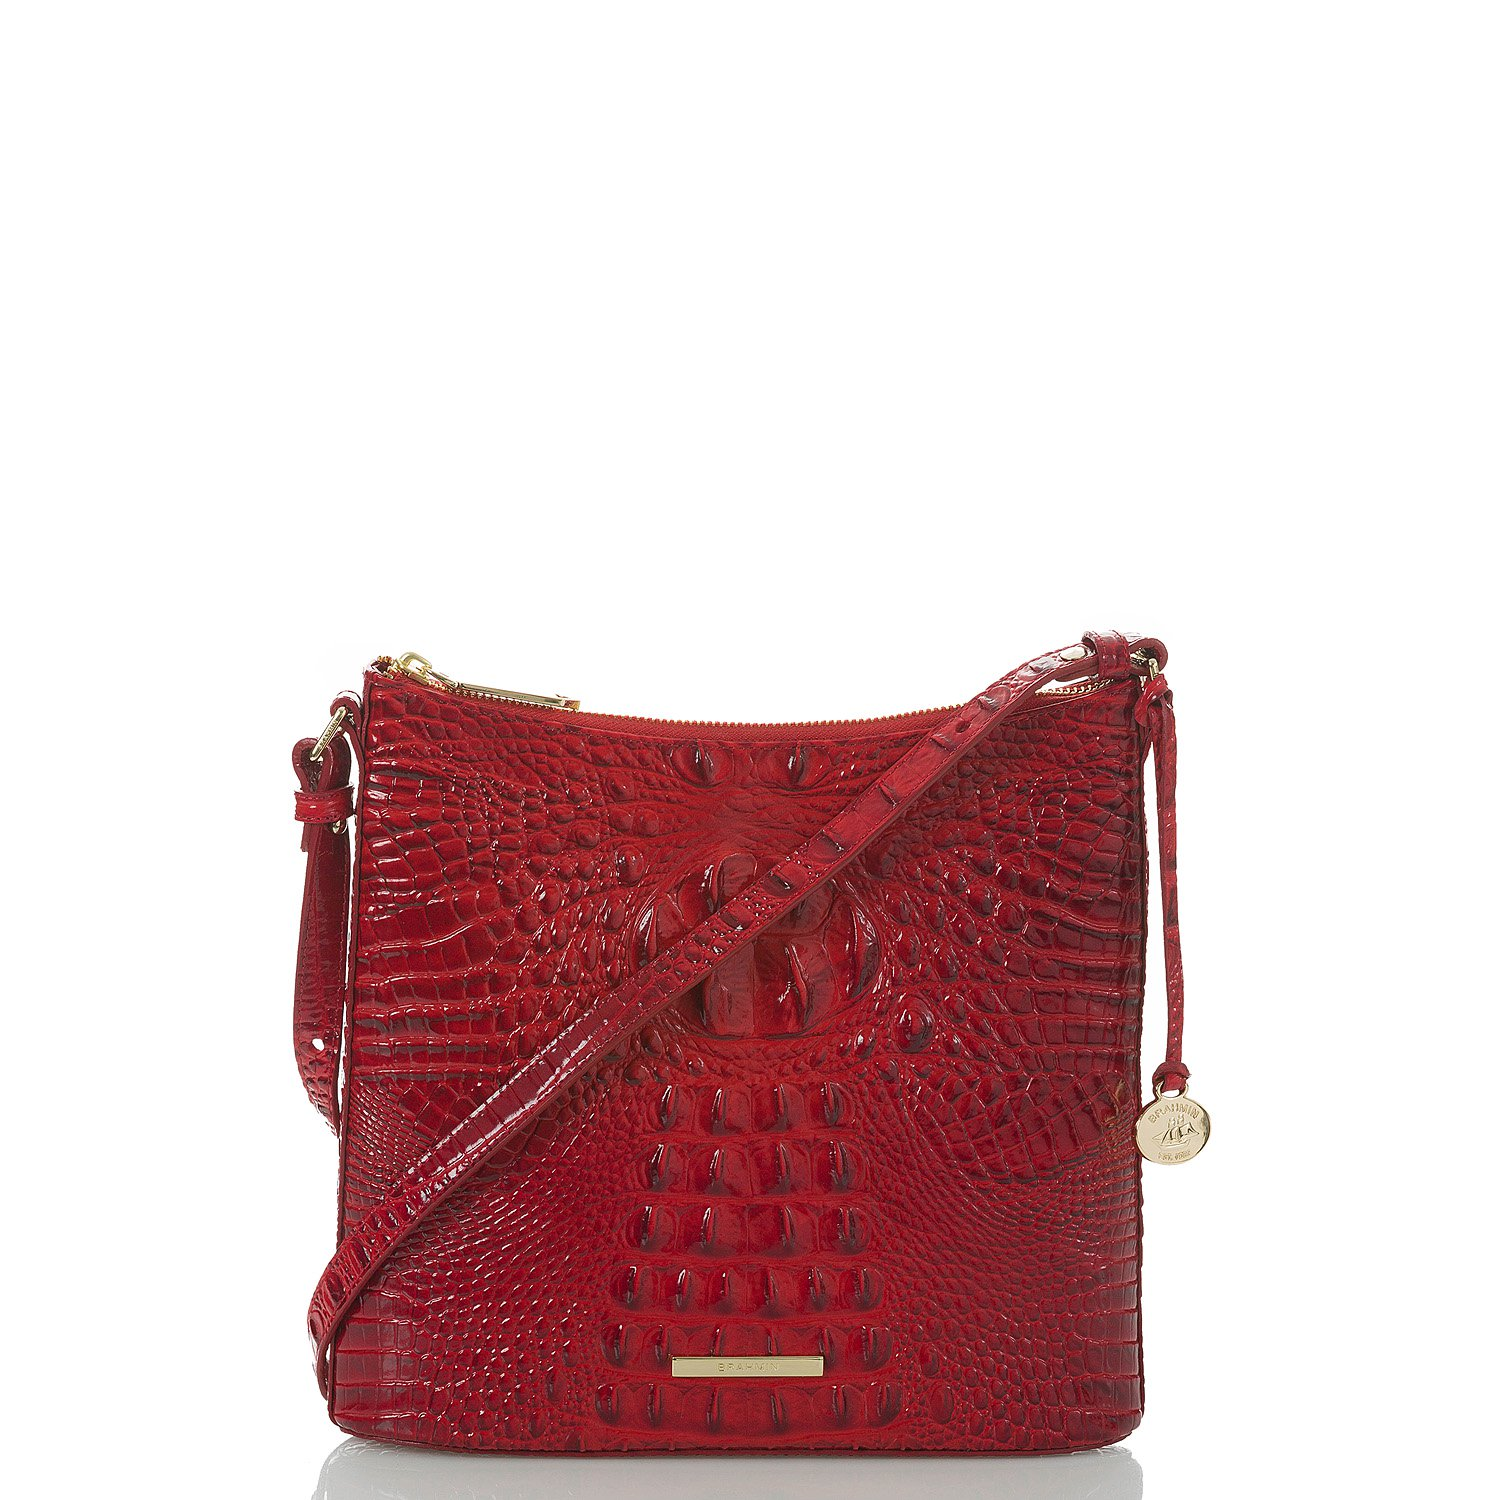 The Katie in Scarlet Melbourne